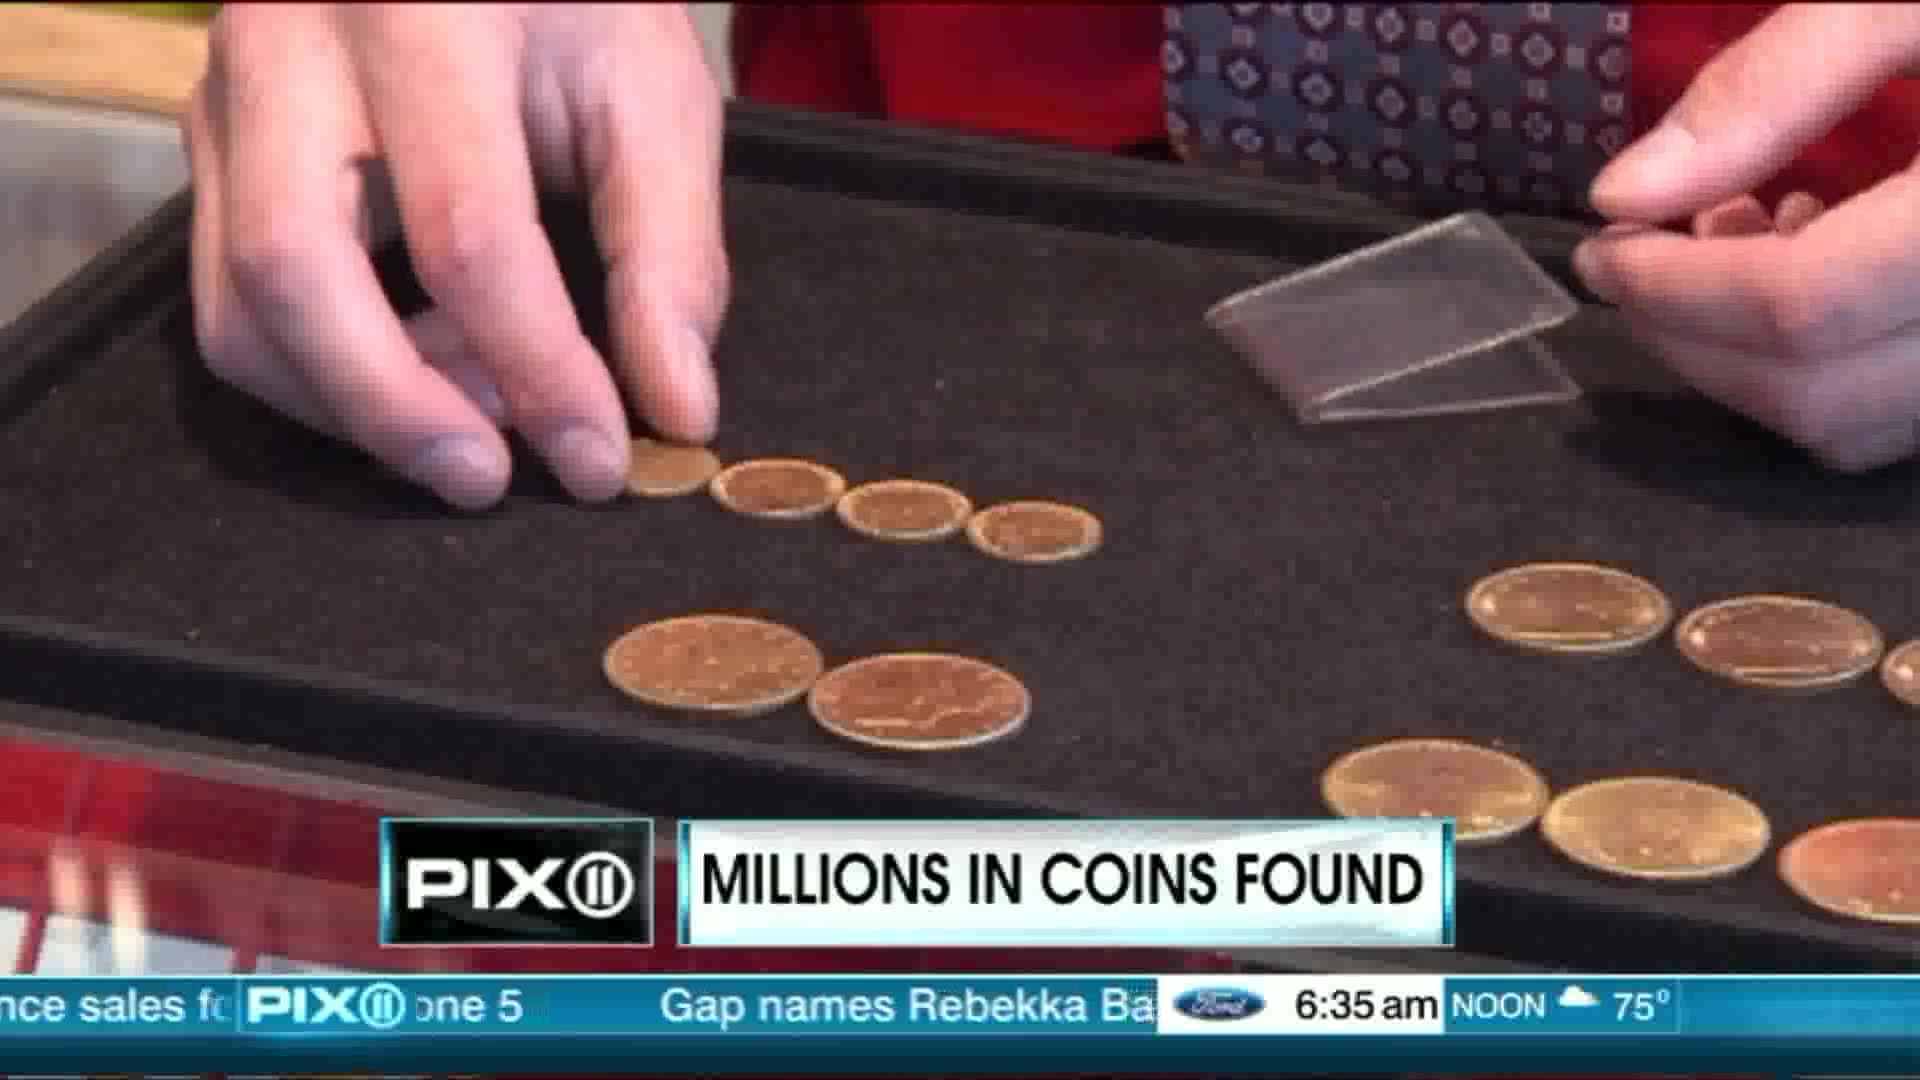 Millions In Gold Coins Found In Dead Man's Home